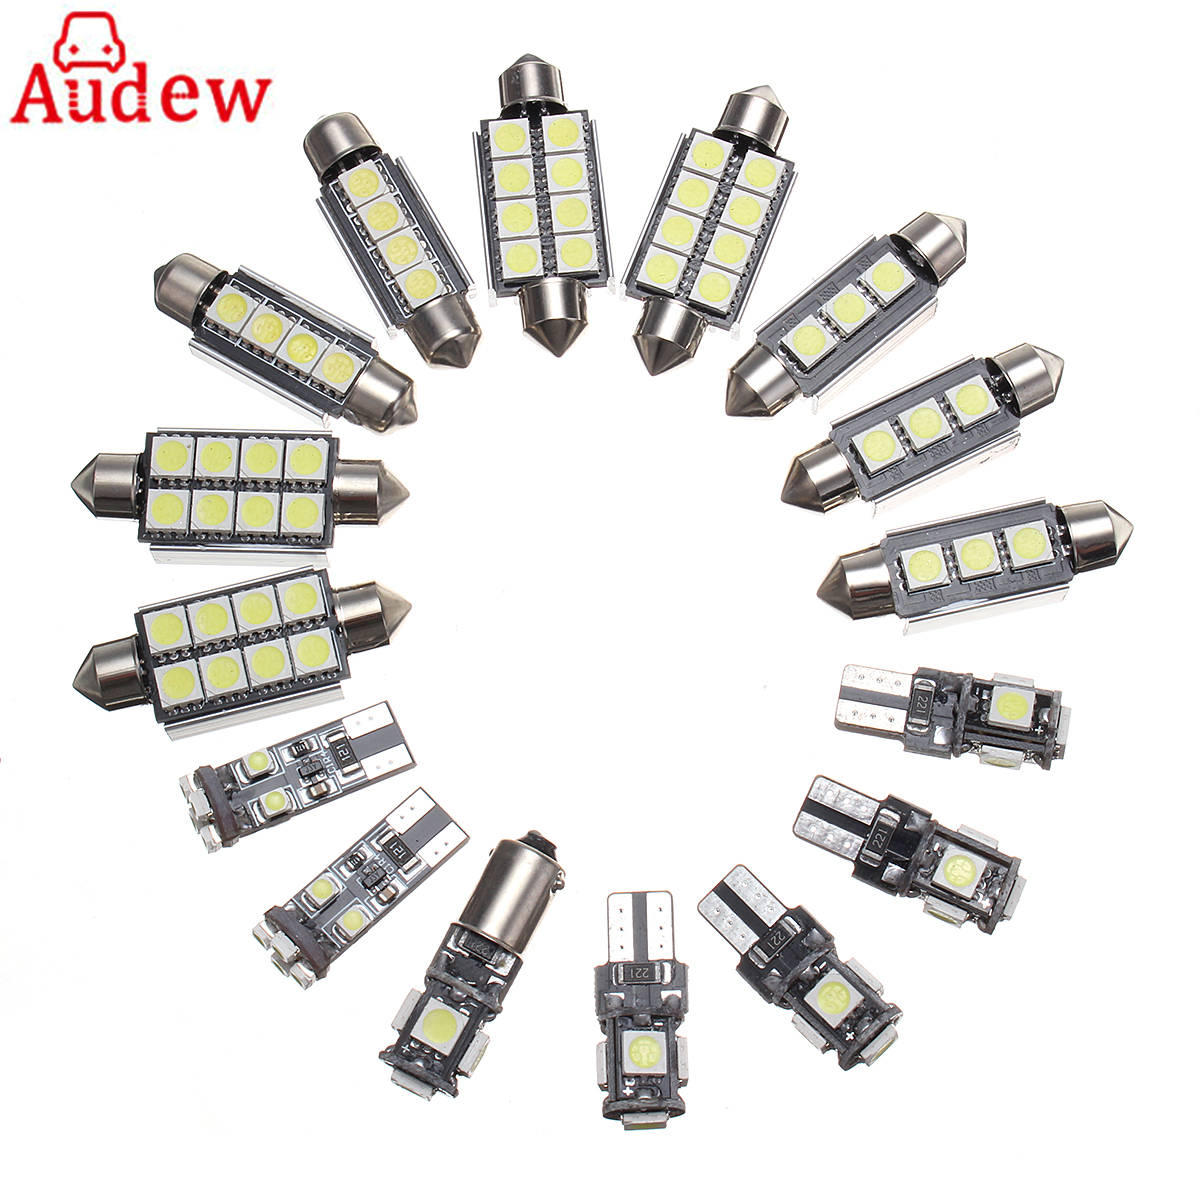 20pcs white Car Interior lamp LED canbus Light Kit With Tool for Audi A4 S4 B8 avant 2009-2015 цена